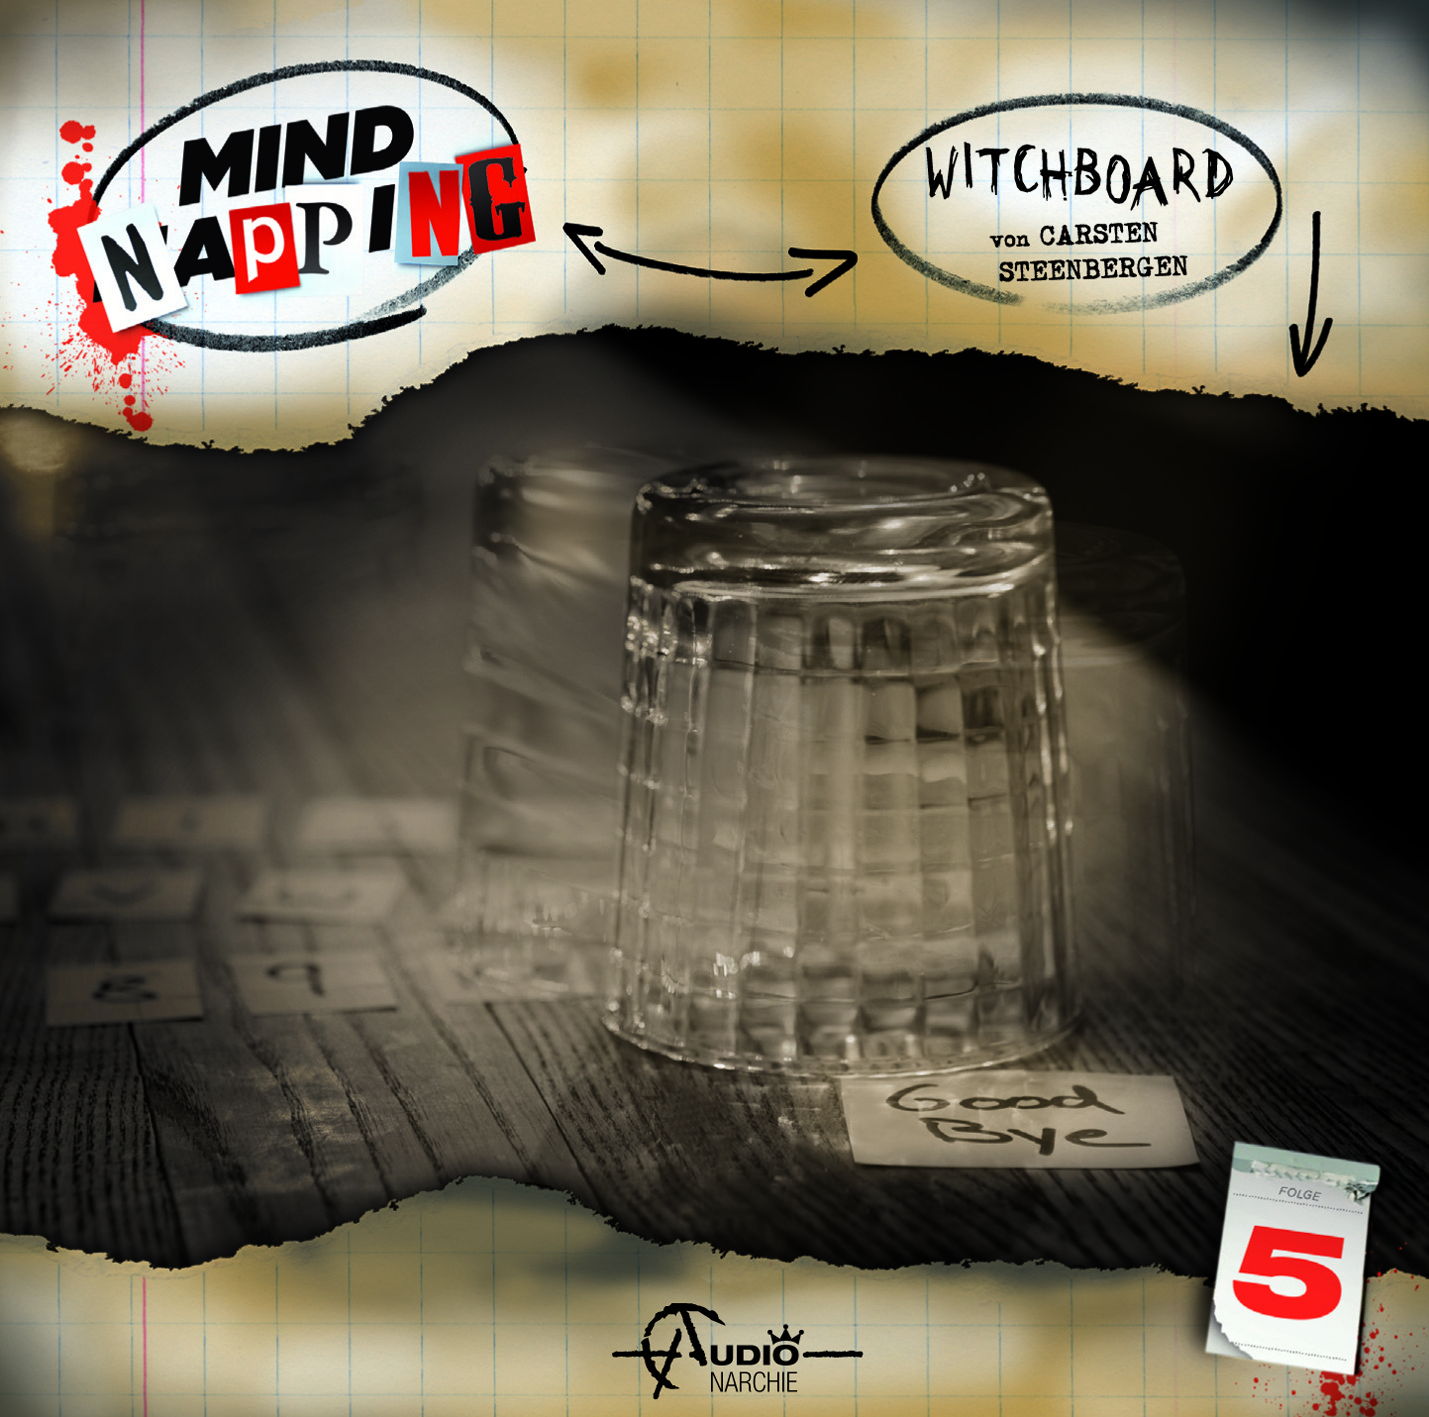 Mindnapping (5) – Witchboard